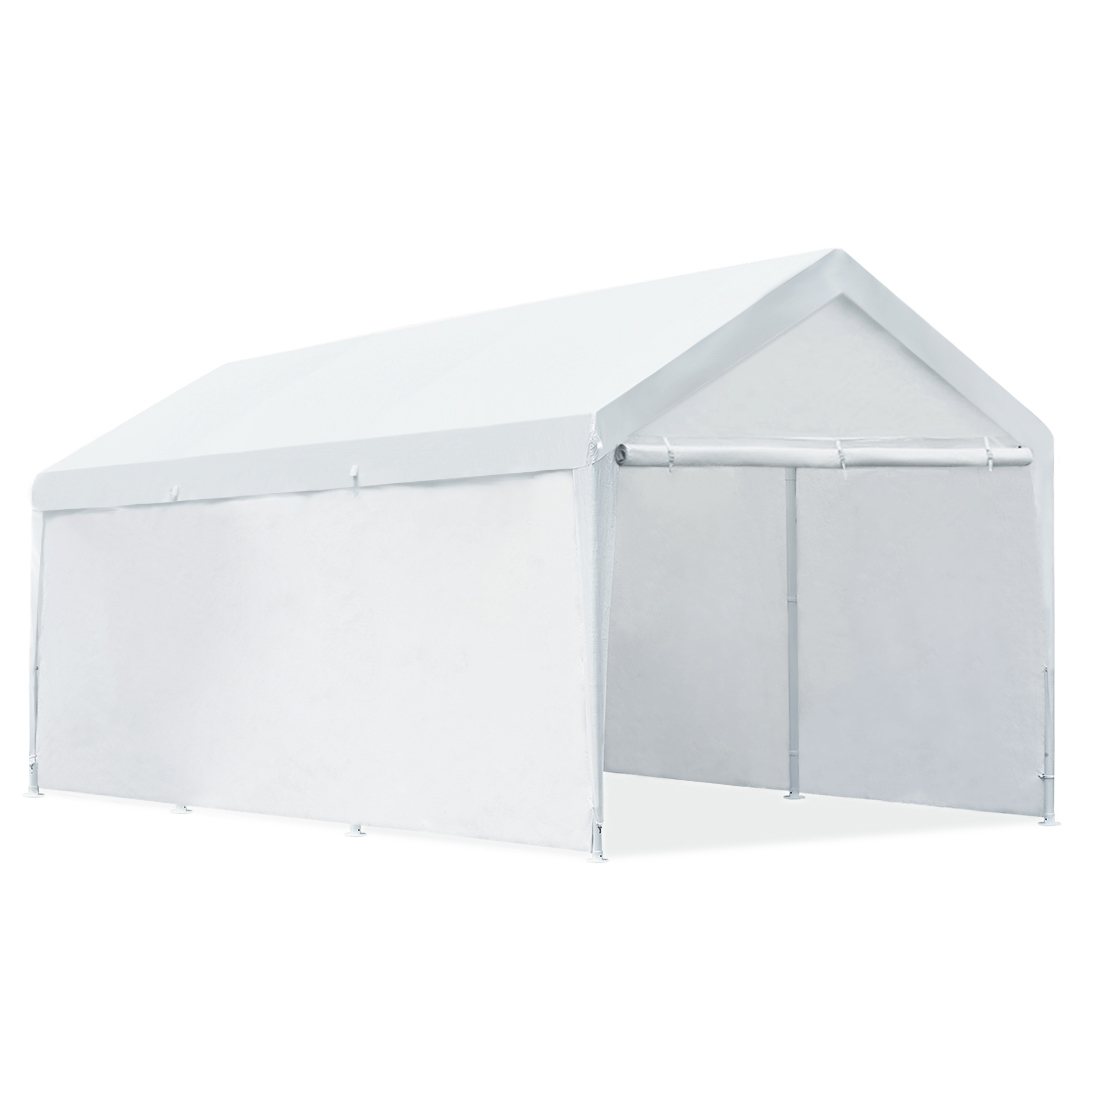 Quictent 20x10 Heavy Duty Portable Carport Canopy Party Tent White (1101)